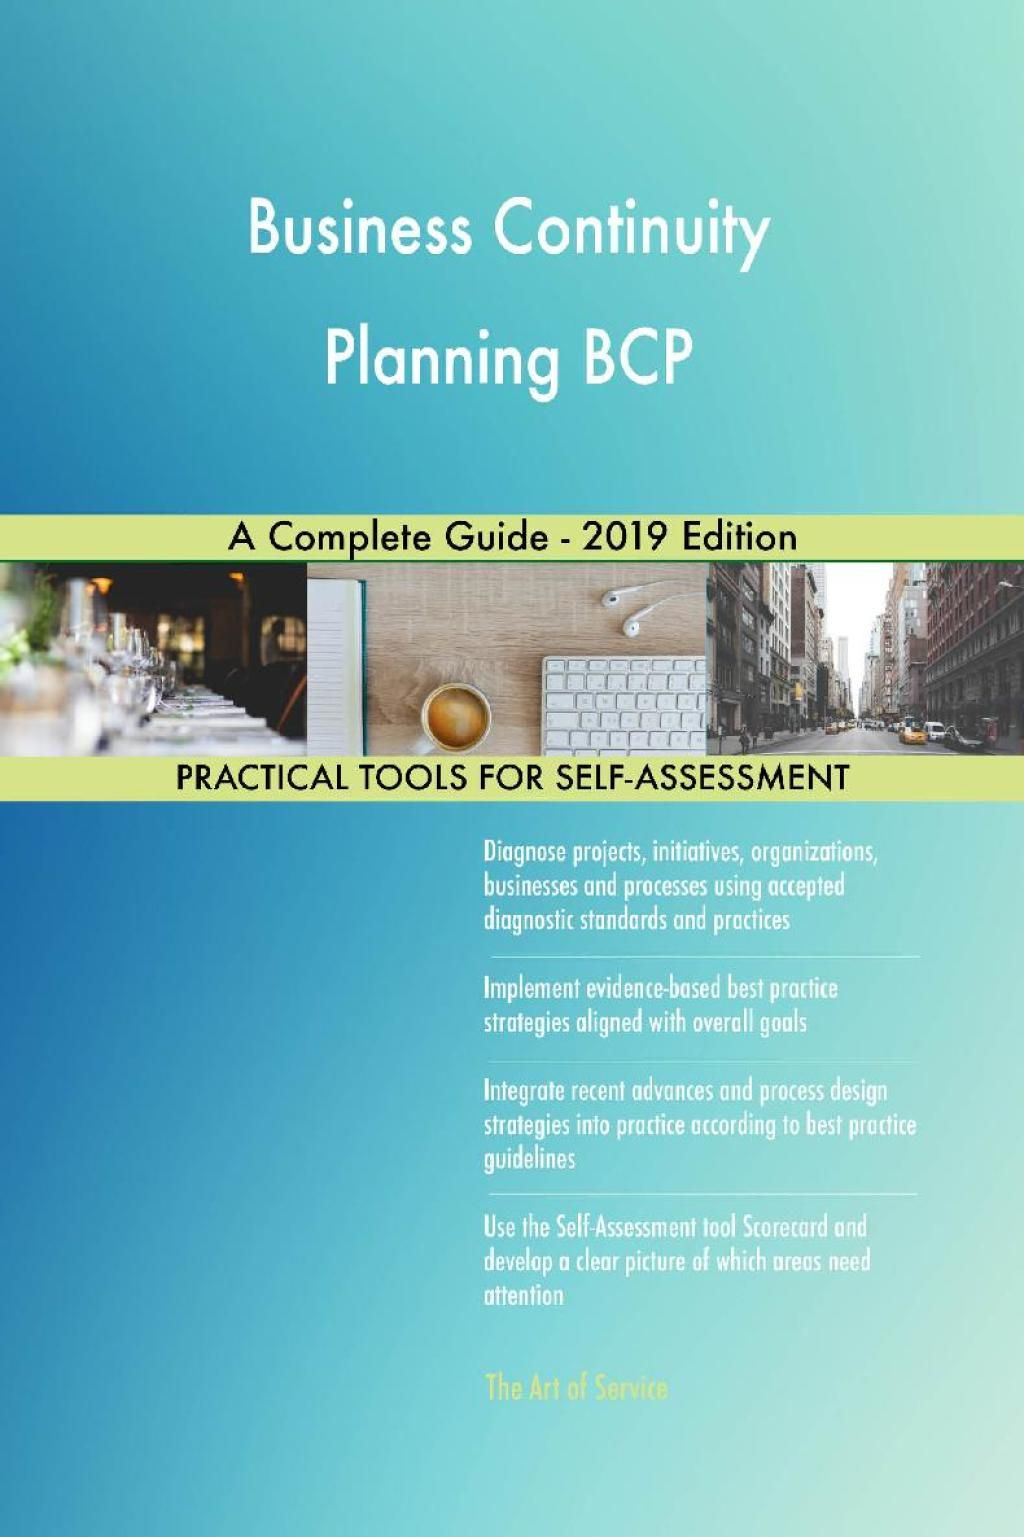 Business Continuity Planning BCP A Complete Guide 2019